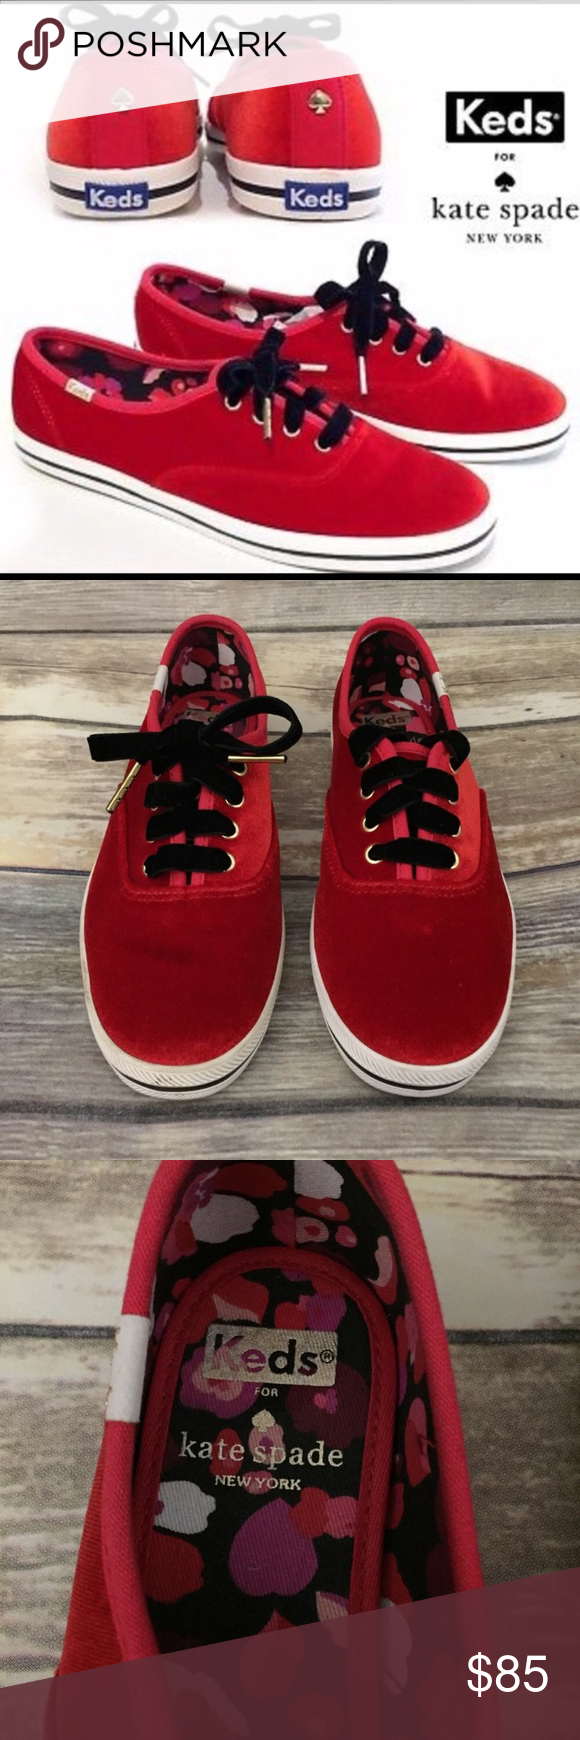 978b1b146817 NEW Keds for Kate Spade New York New Keds for Kate Spade New York Red Velvet  Cute Fashion Sneaker Shoe   New No Box   Keds for Kate Spade Shoes Sneakers